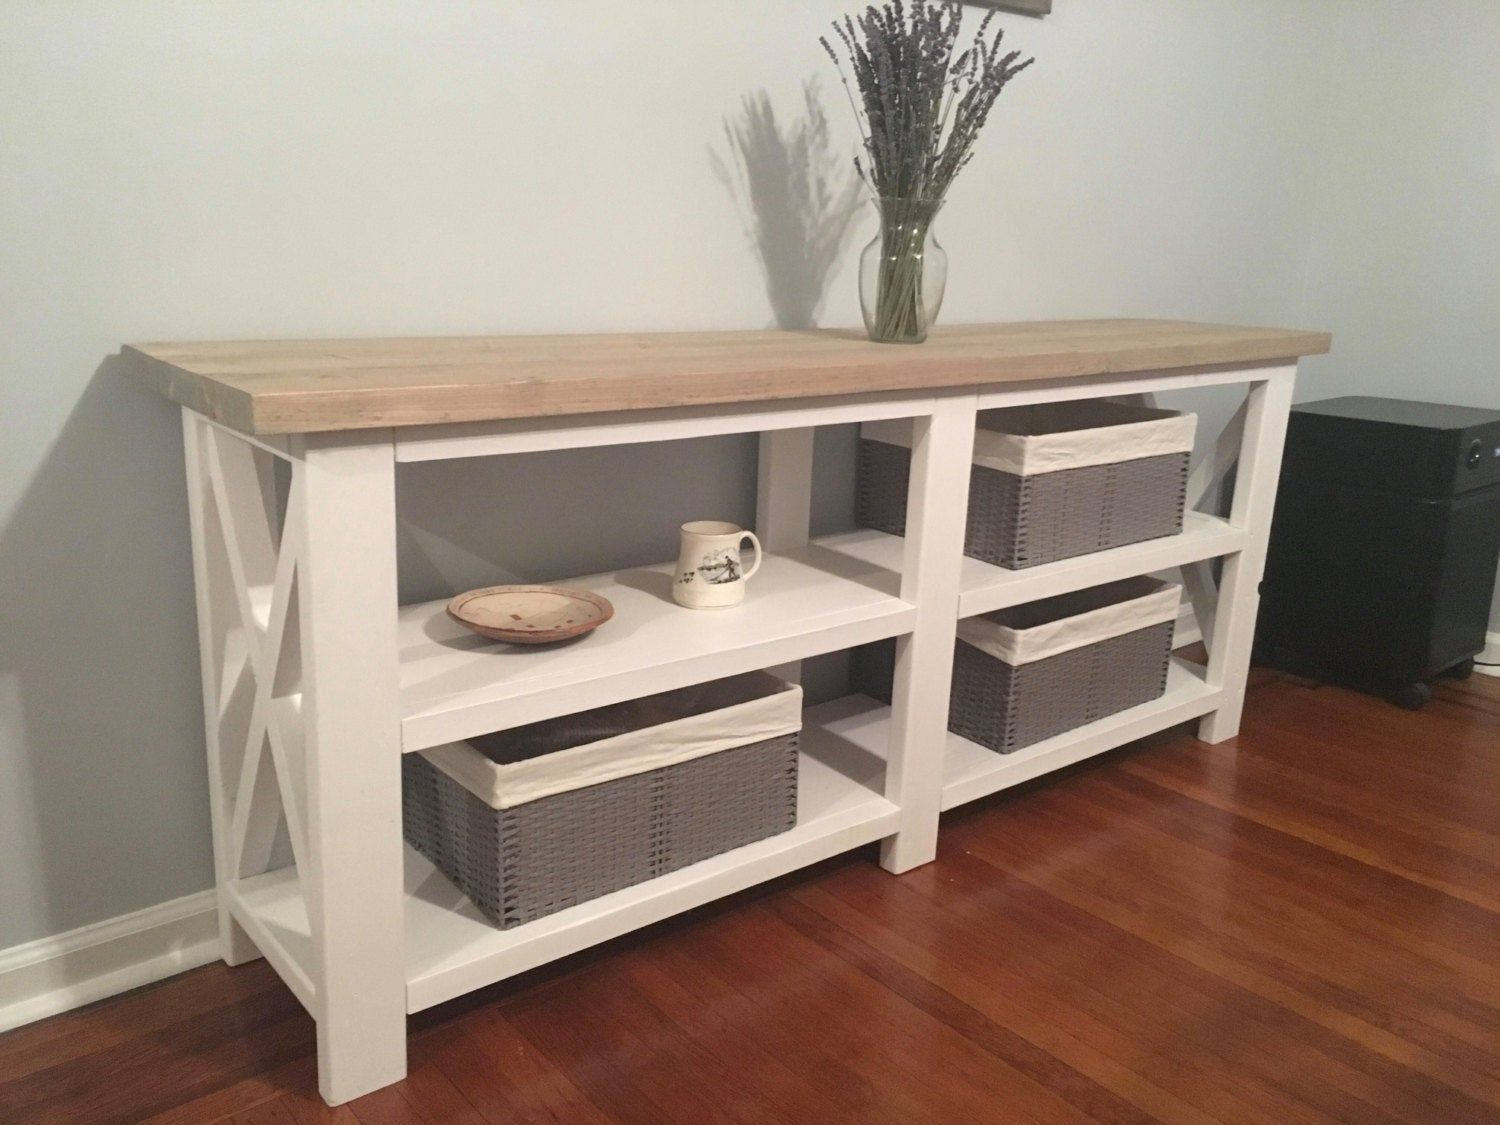 Rustic X Console Table / farmhouse X table / Entryway